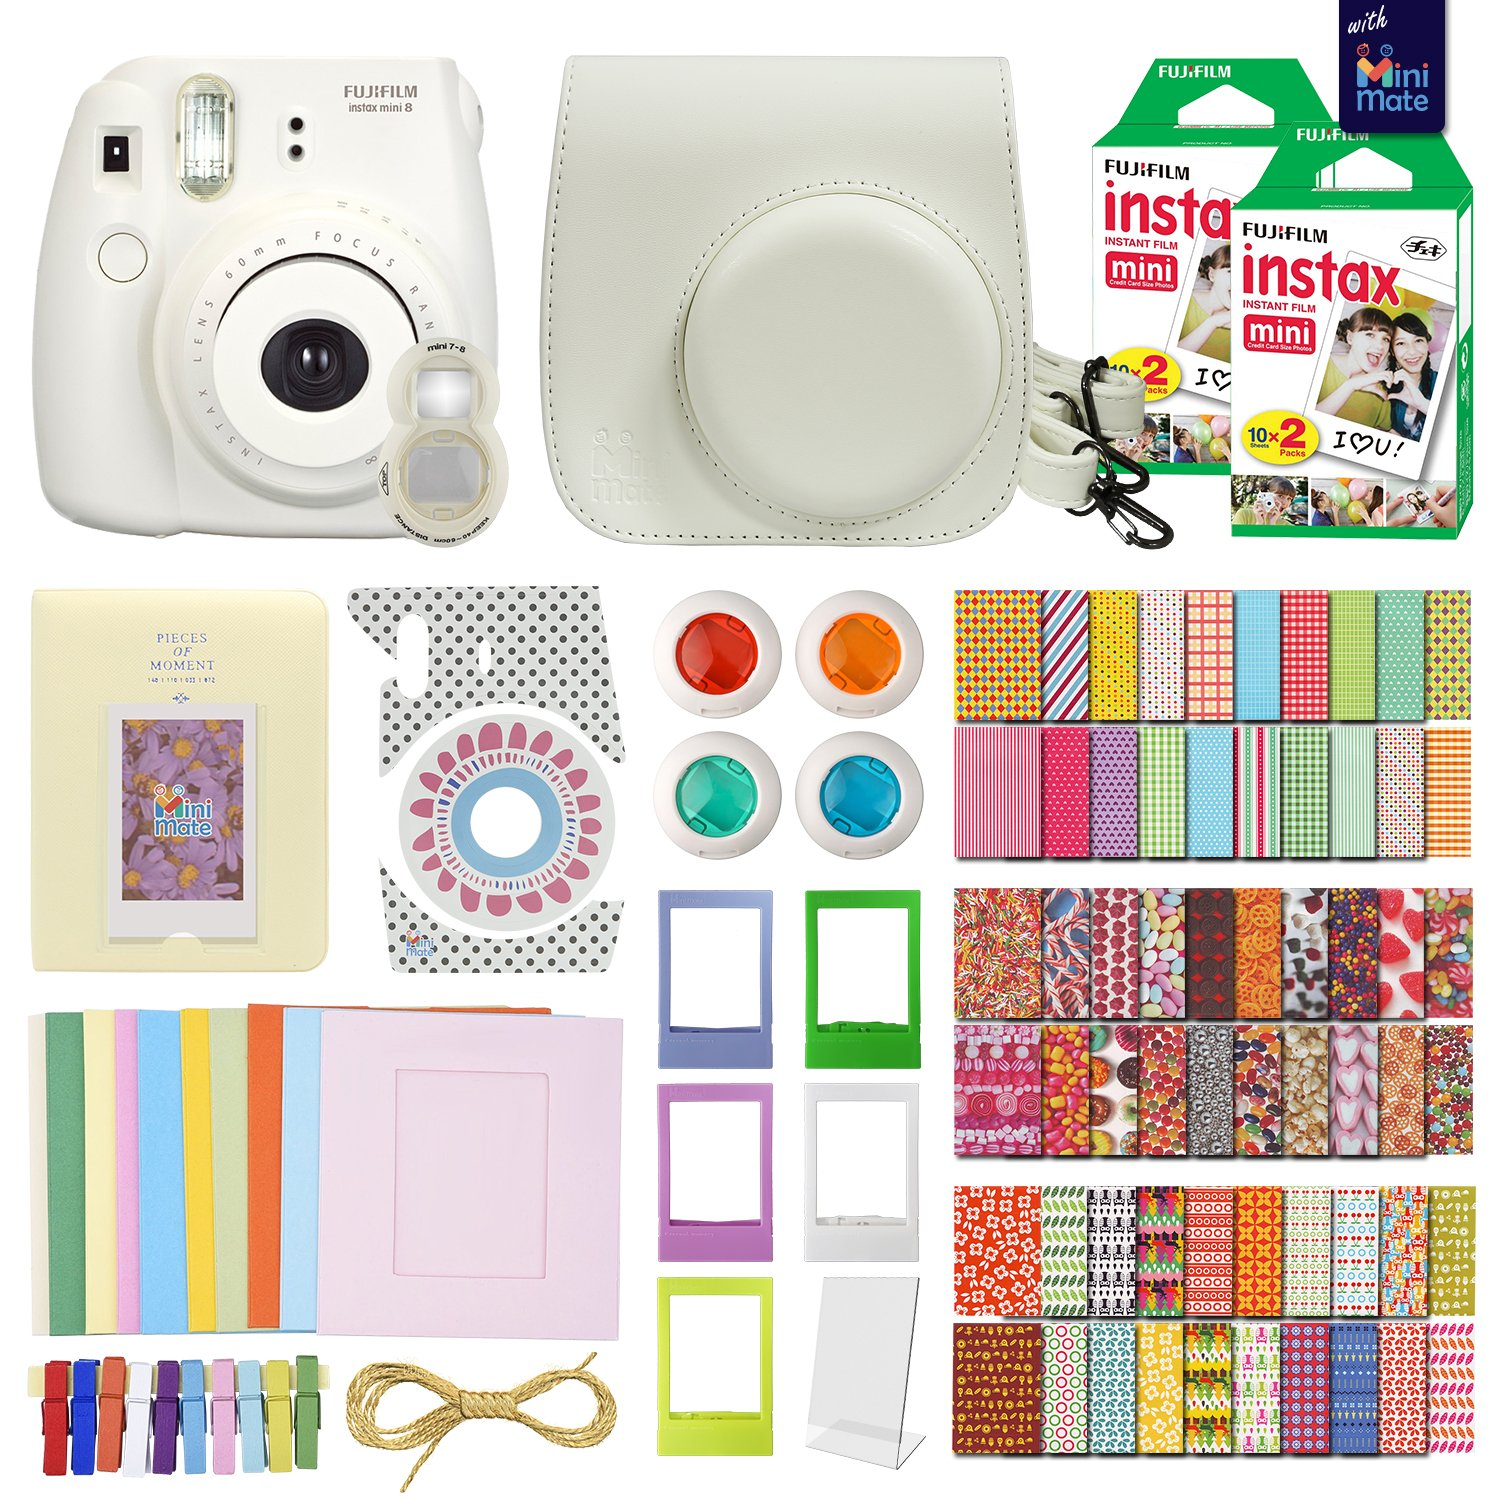 MiniMate Instax Mini 8 Camera with 40 Instax Film and Accessory Bundle, White by MiniMate